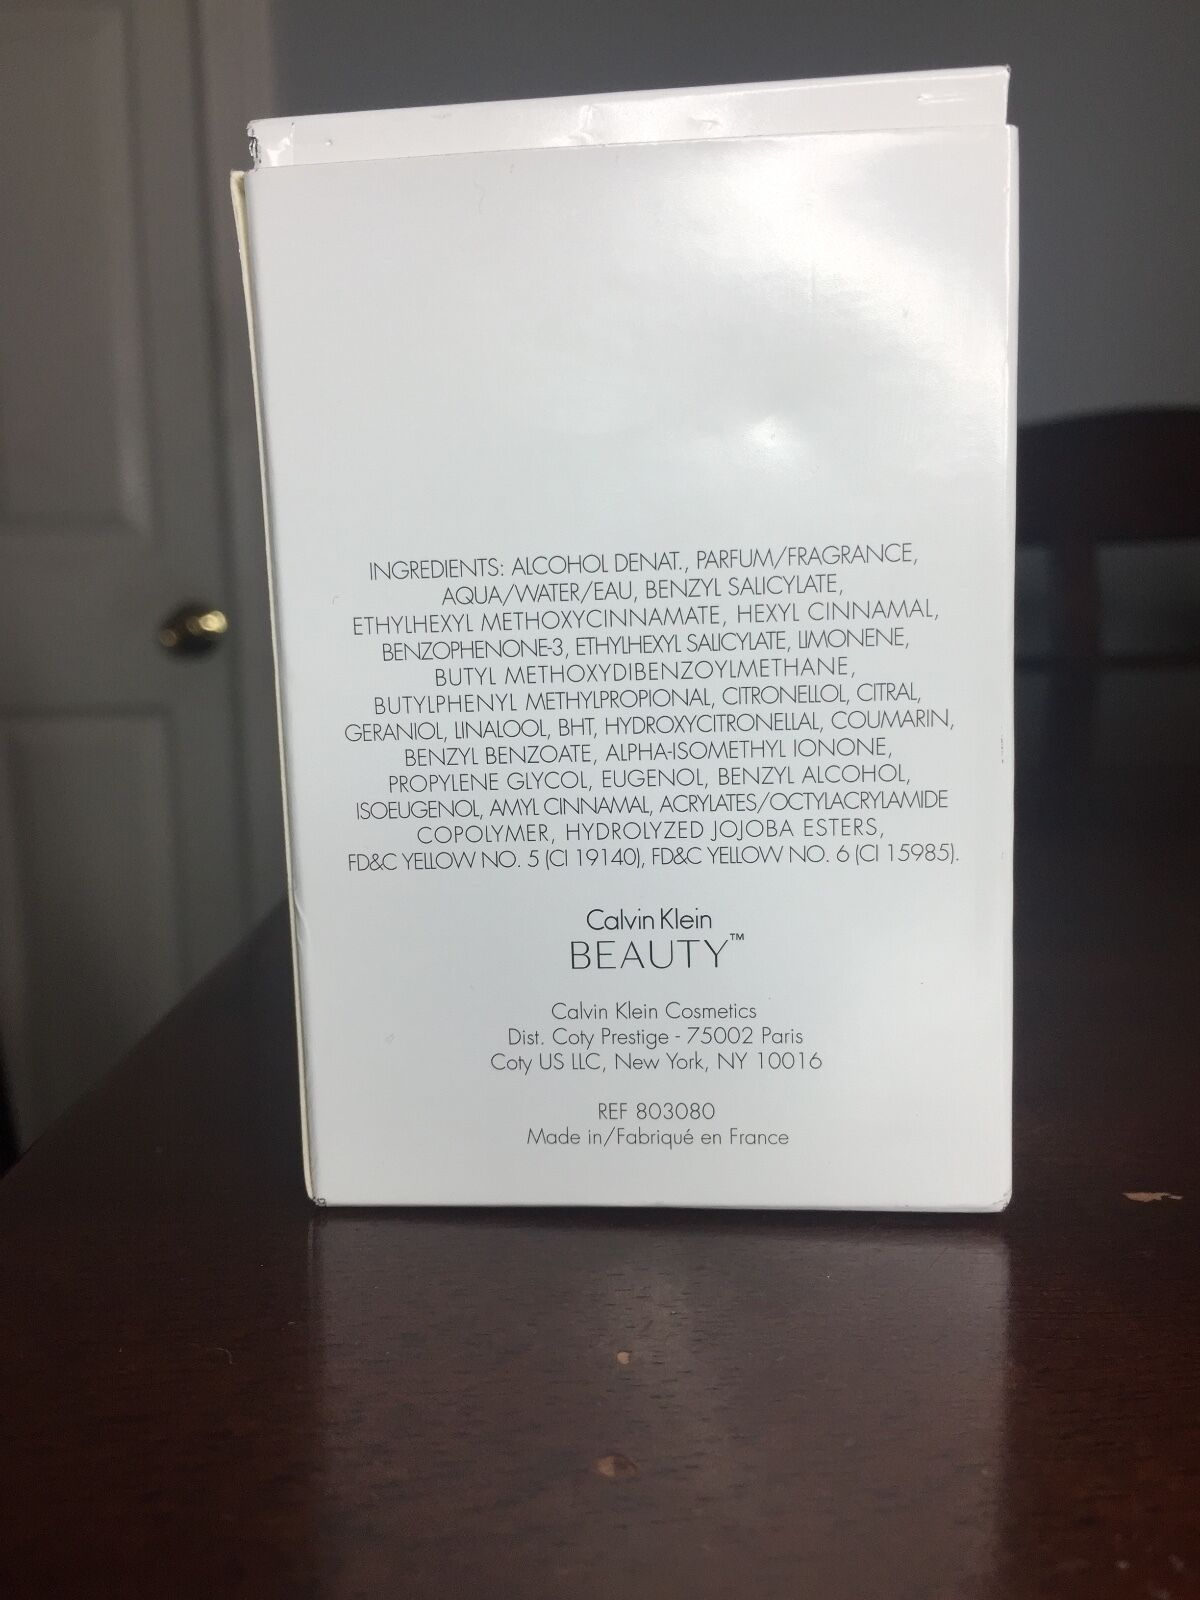 Calvin Klein Beauty 34oz Womens Eau De Parfum Ebay Original For Women Norton Secured Powered By Verisign